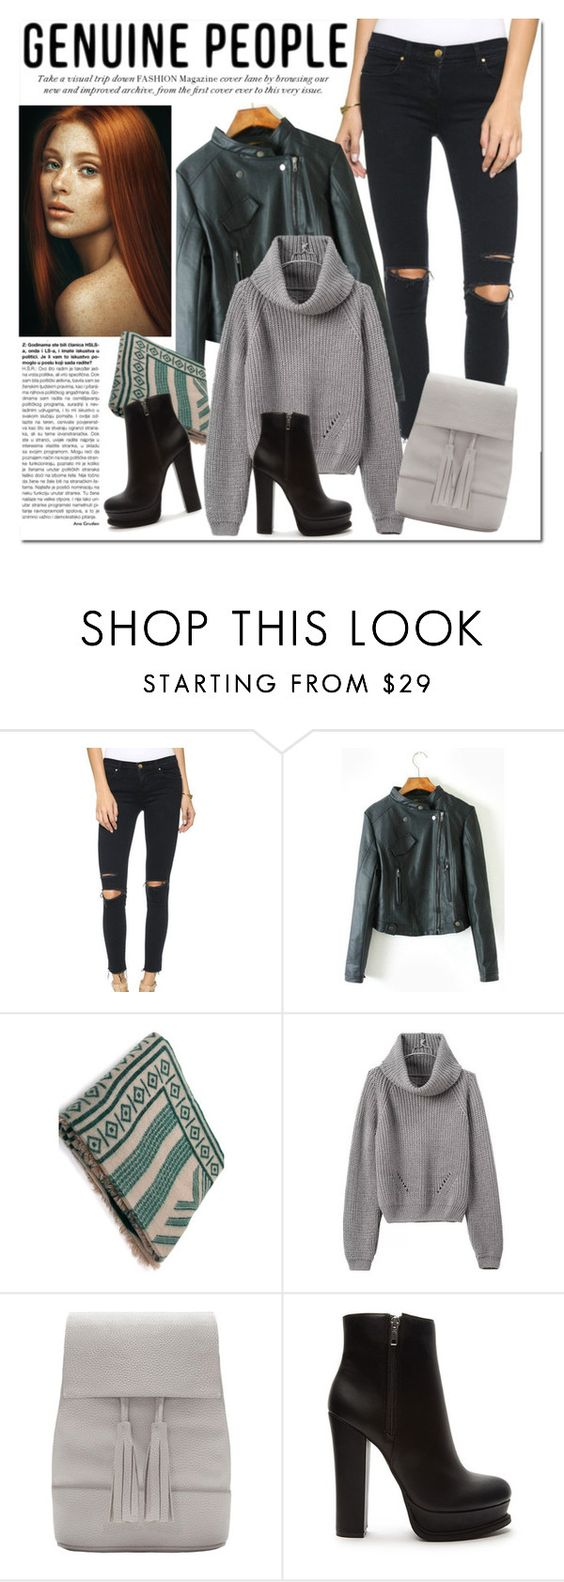 """""""GENUINE PEOPLE (Get ready for cold weather)"""" by marija-colic ❤ liked on Polyvore featuring Forever 21, genuinepeople and Genuine_People"""